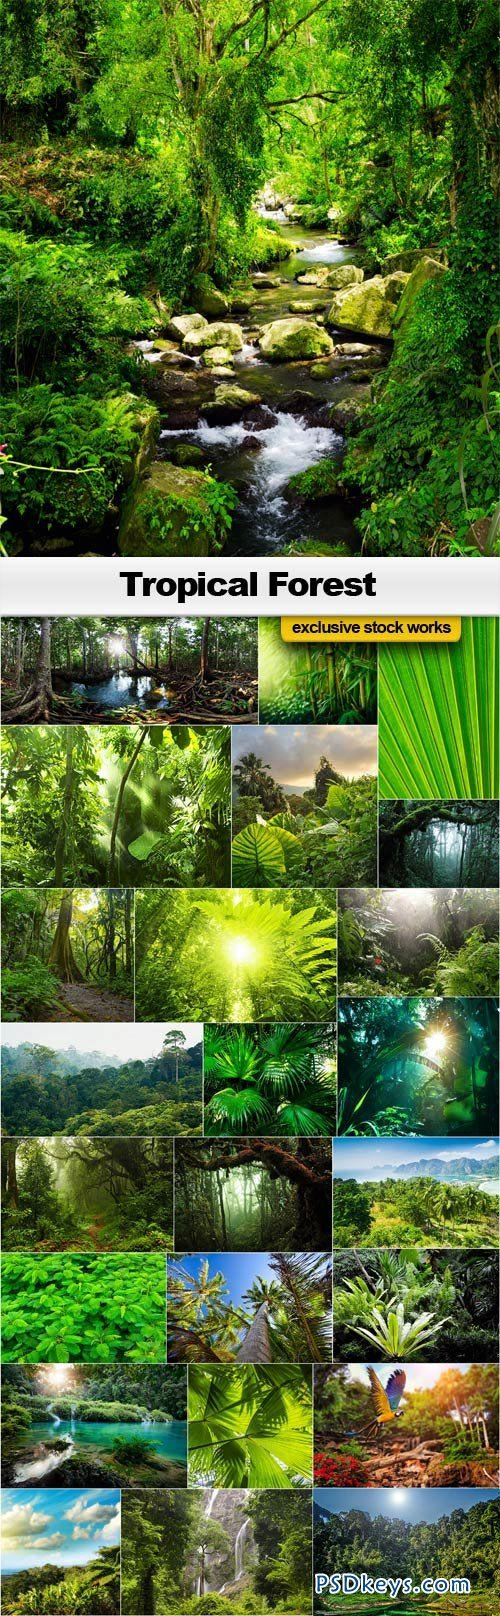 Tropical Forest - 25xJPEGs